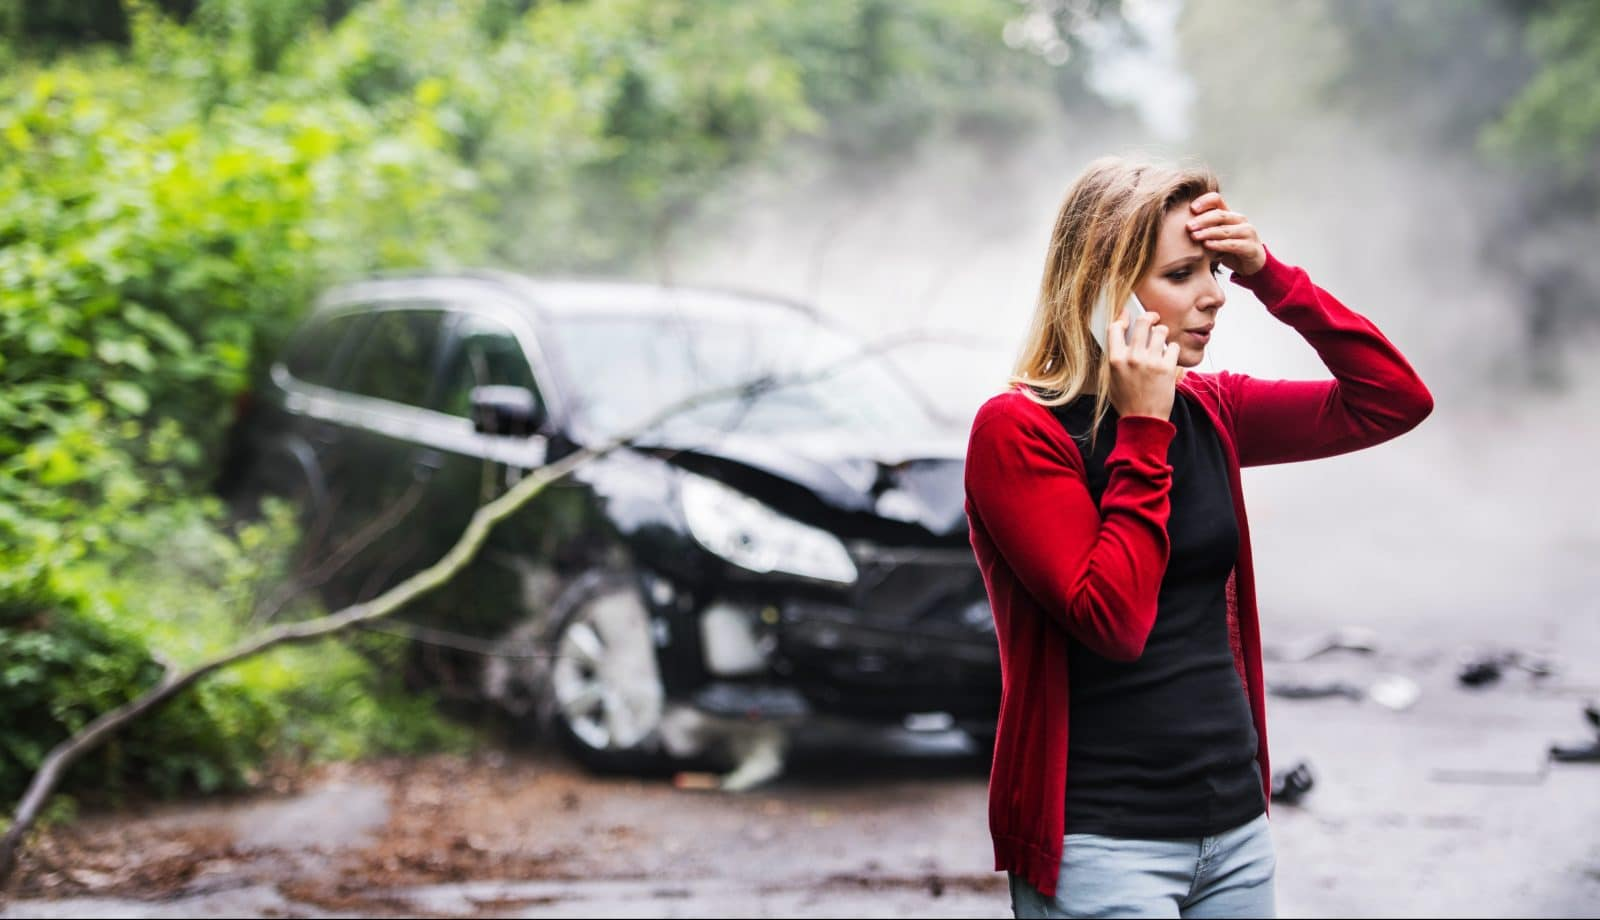 Buckle Up: States with the Most Car Accidents